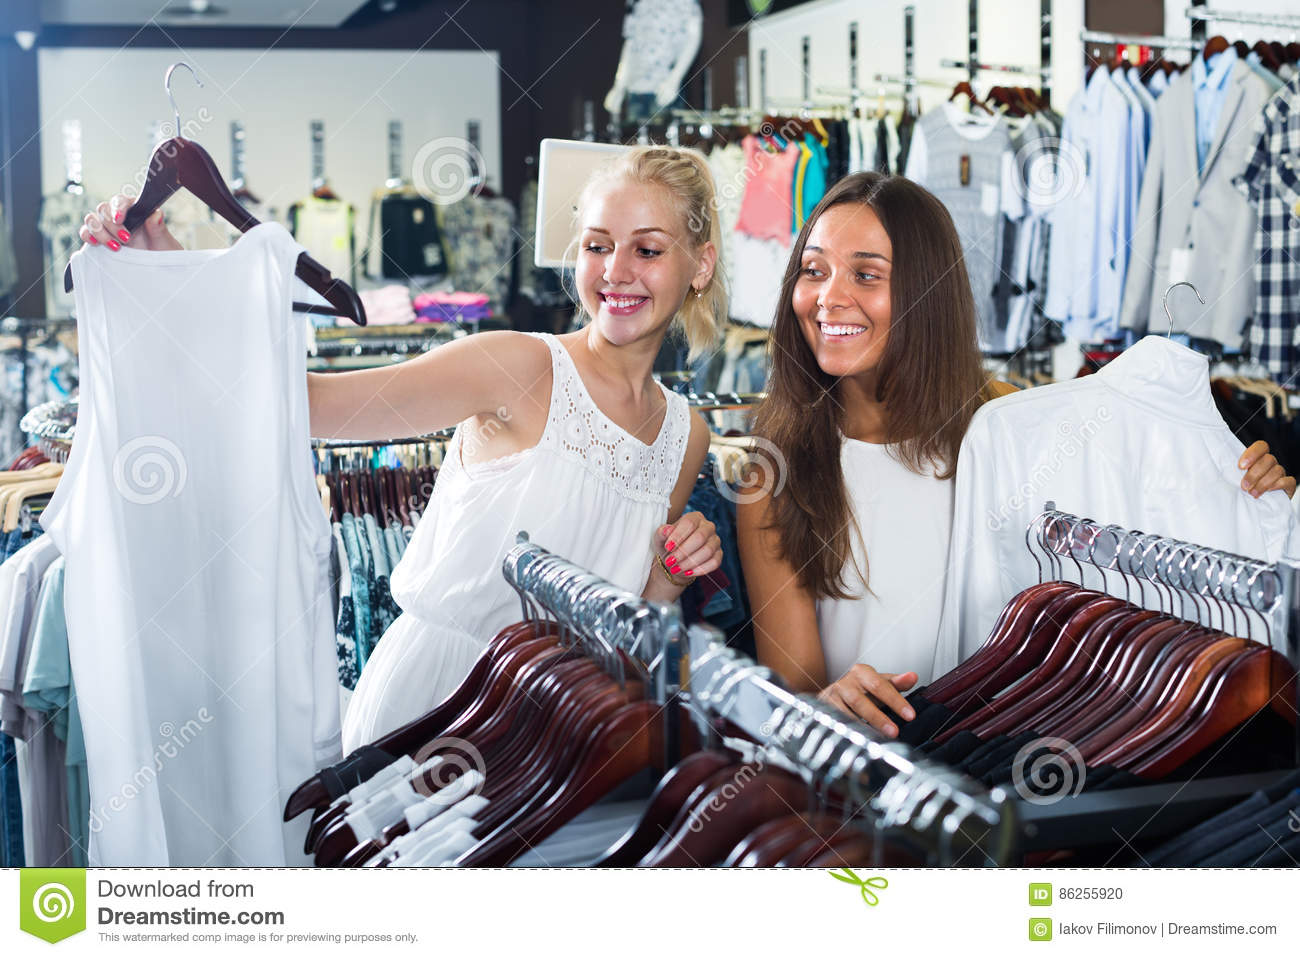 a2097c4ab8 Two cheerful smiling young girls shopping new shirt together in clothes  store. More similar stock images